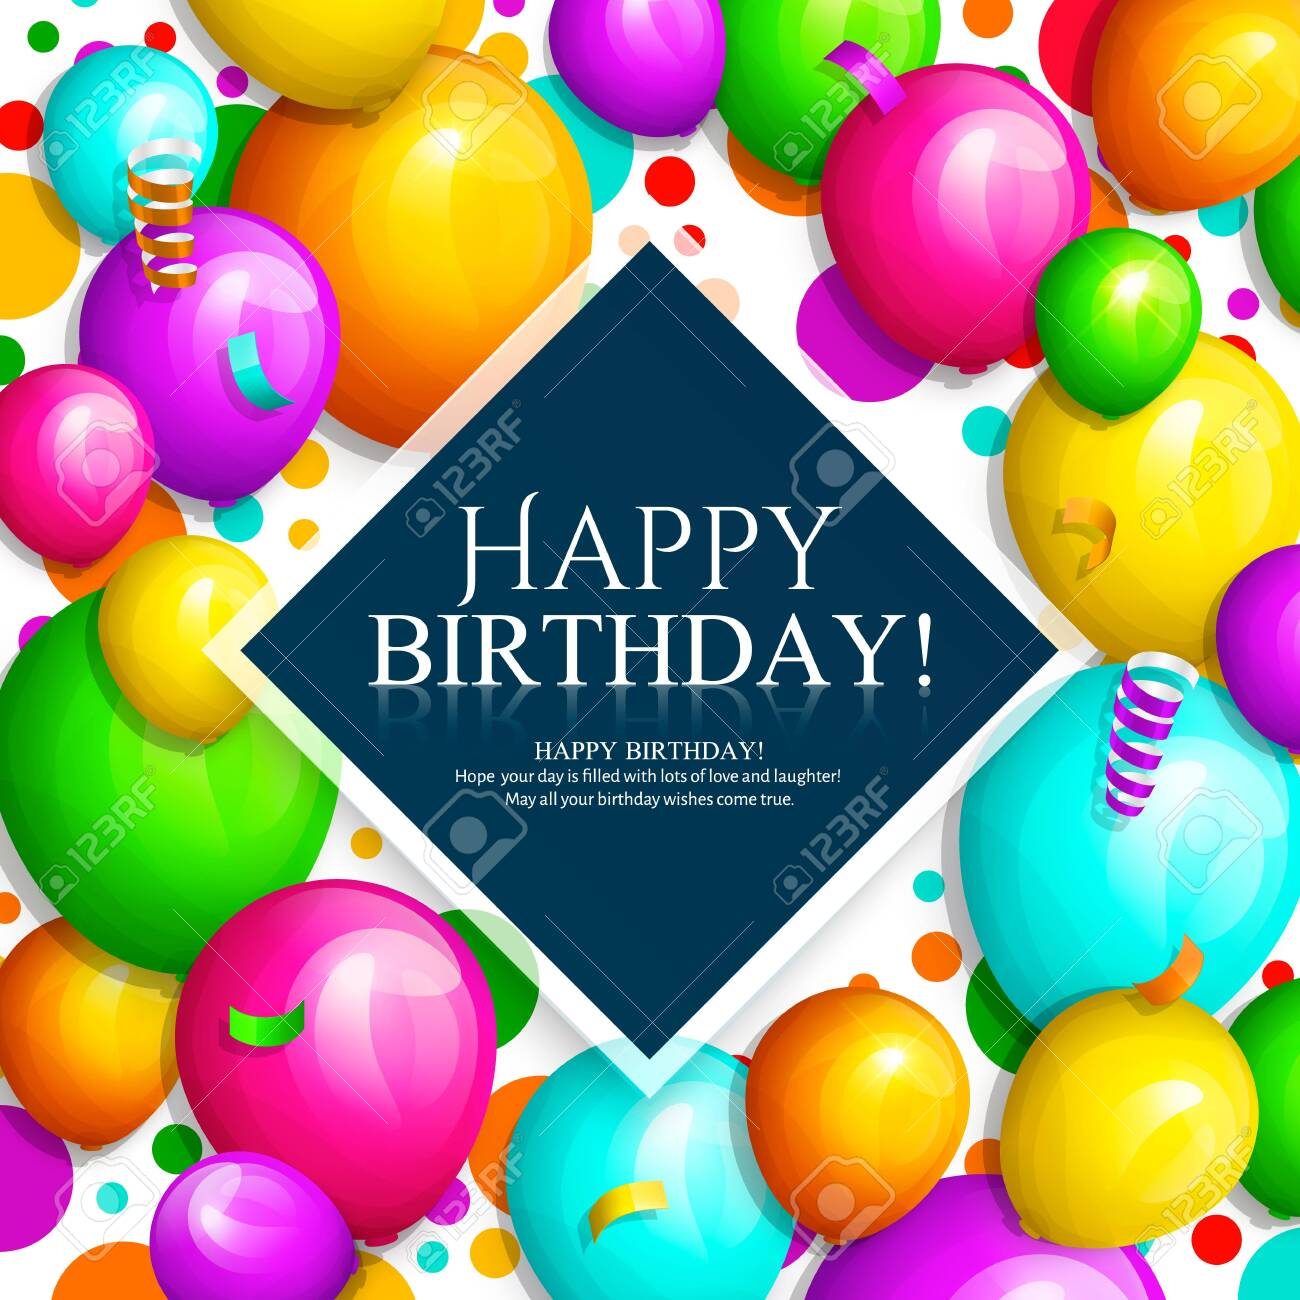 Happy Birthday greeting card. Bunch of colorful balloons and confetti. Stylish lettering on background. Vector. - 120210694